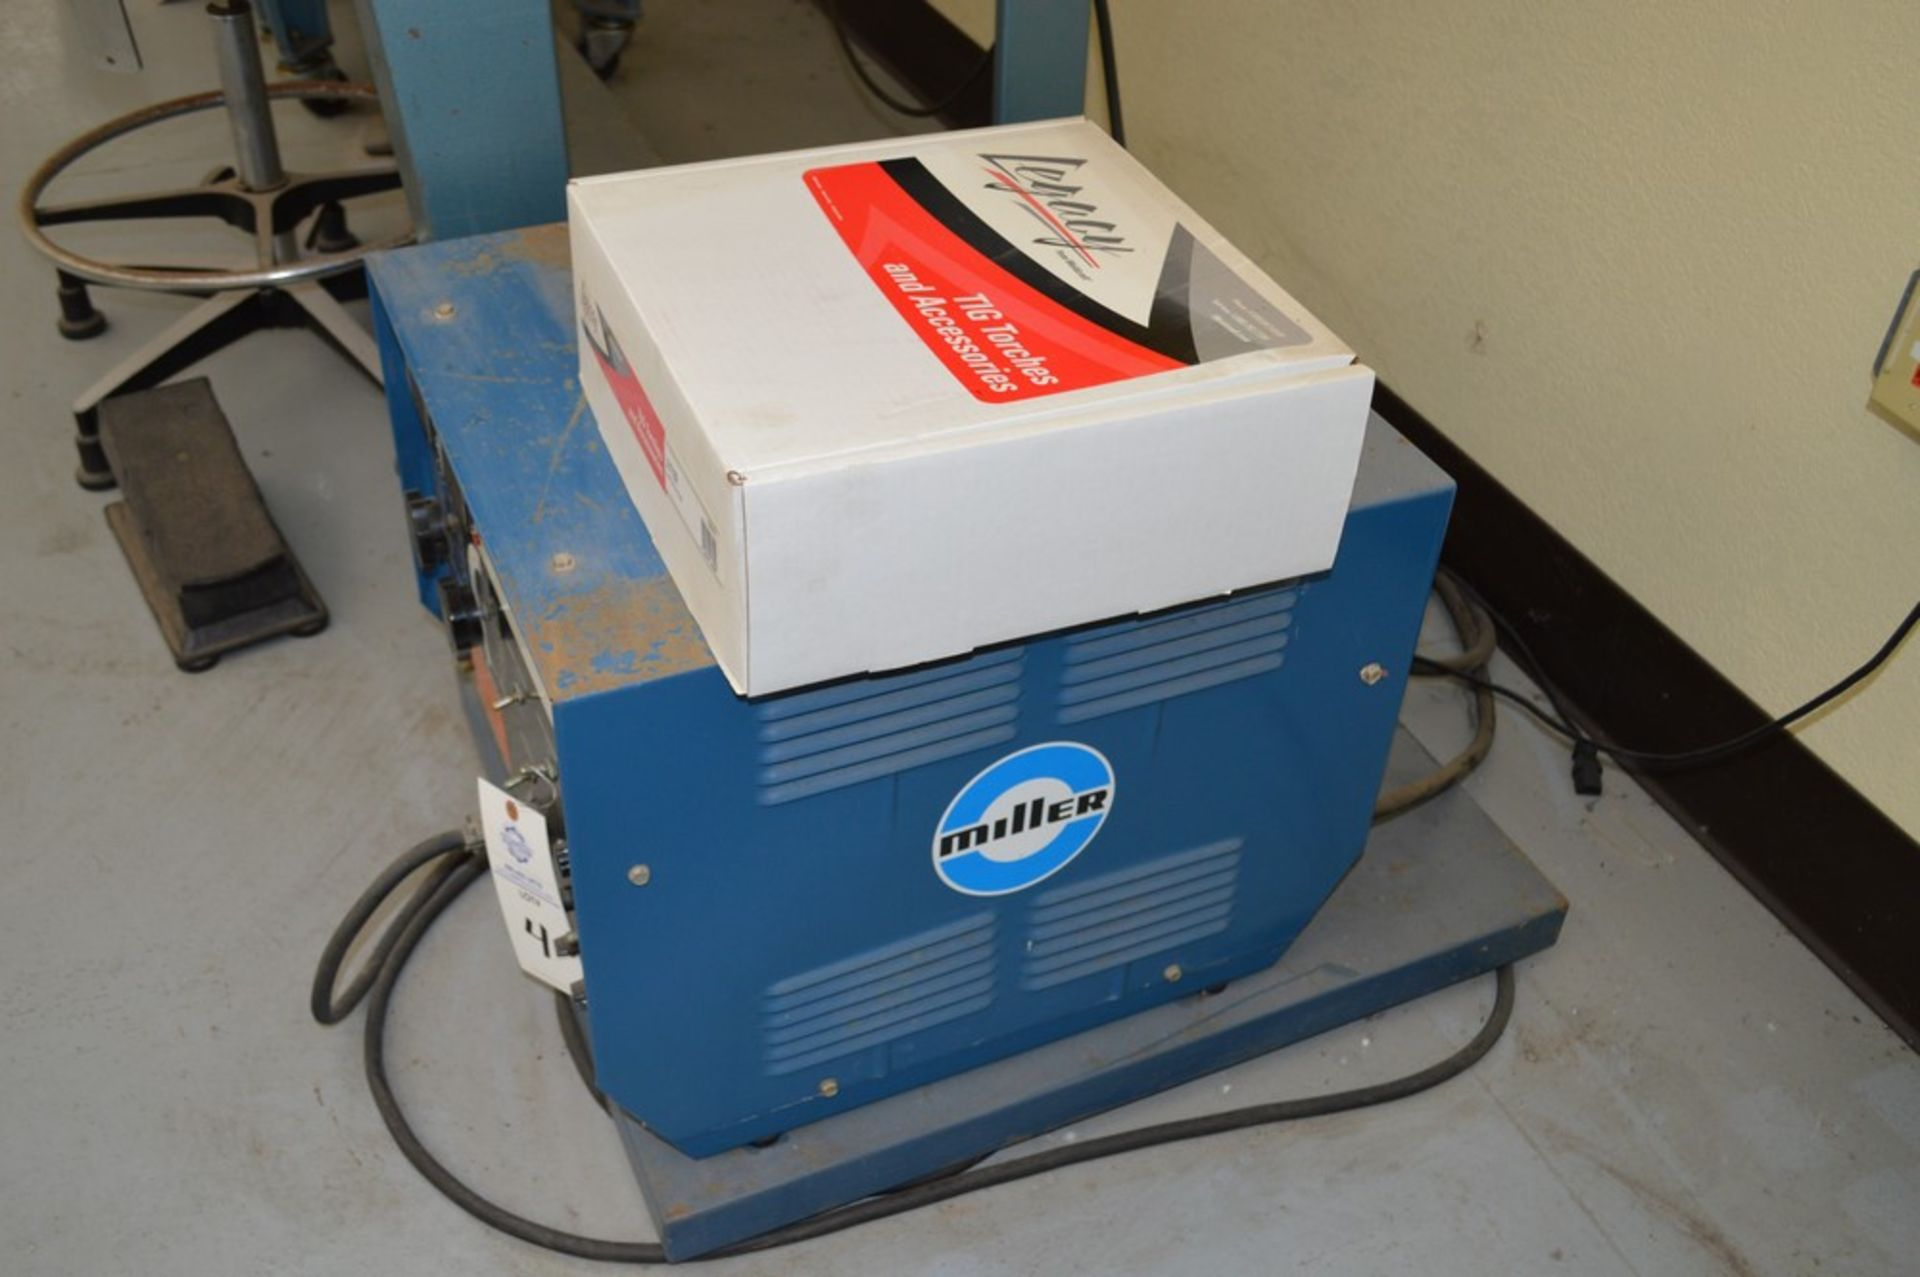 Miller Auto Arc Tig 50A With Tig Legacy 25' Torch Package - Image 3 of 4